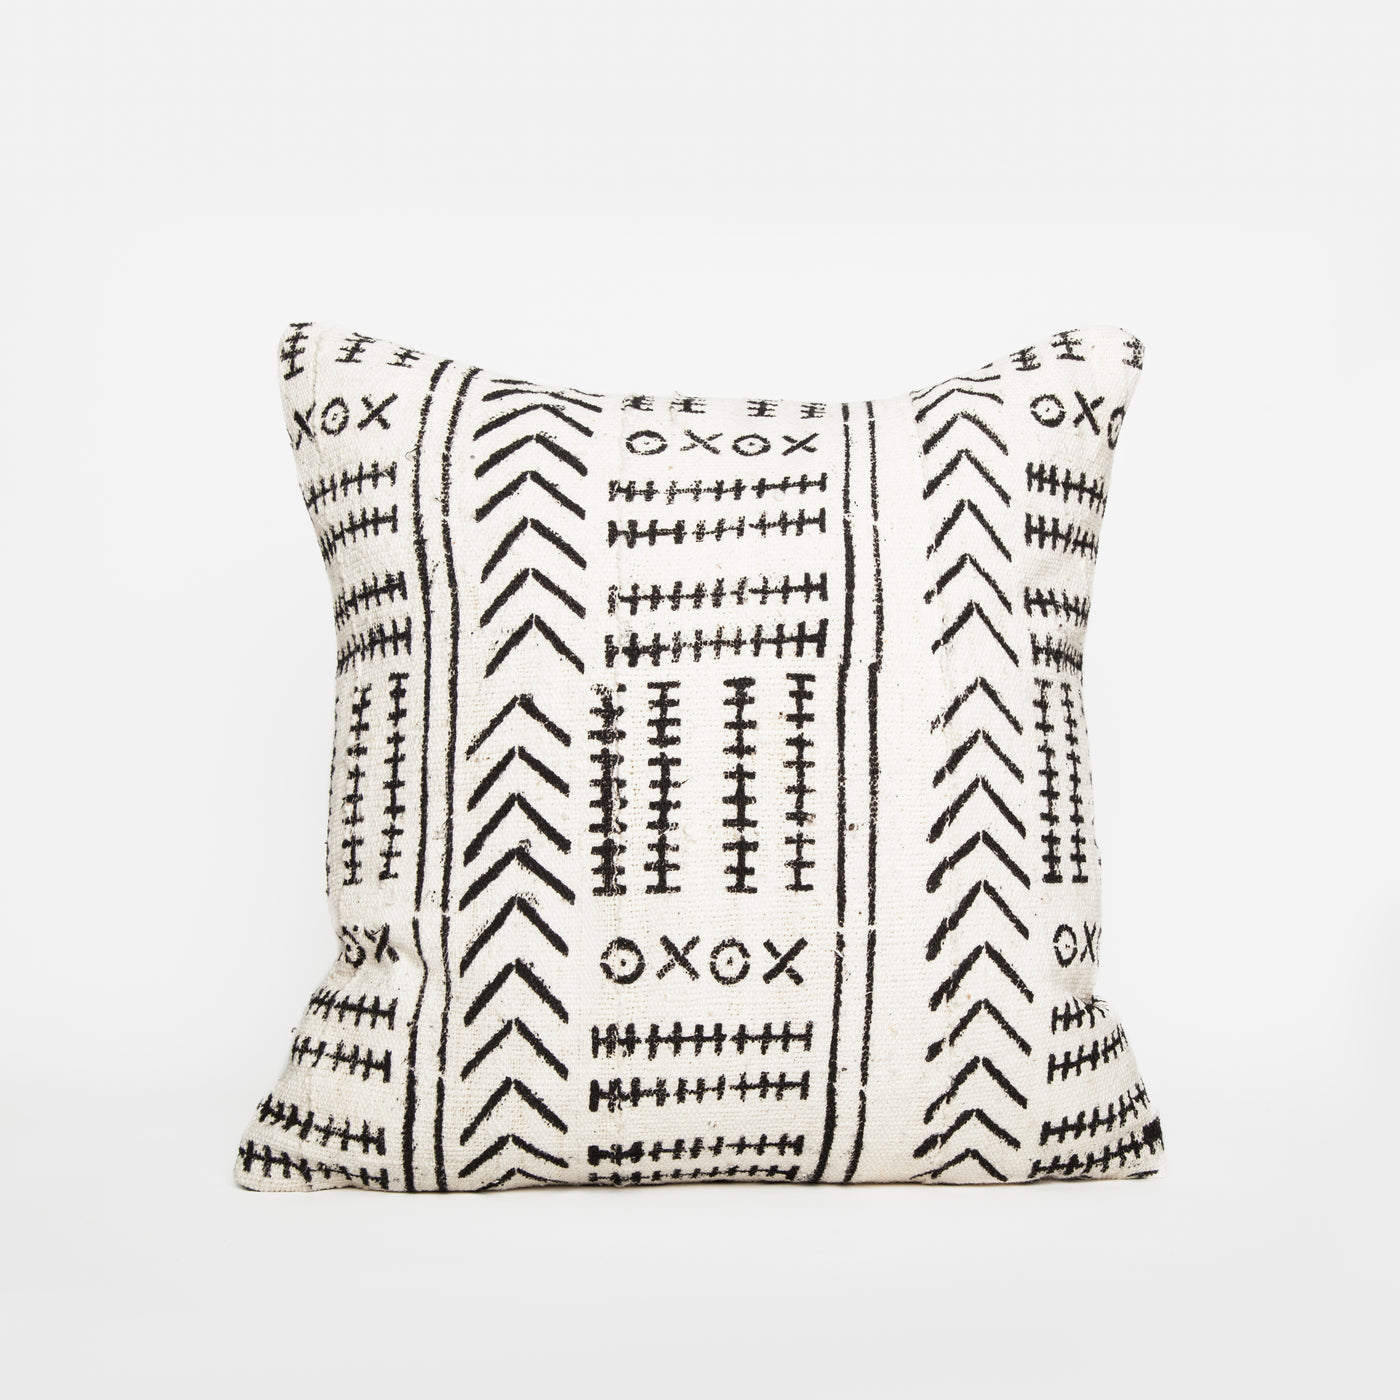 Hom & Co | coussin mudcloth vintage | mudcloth pillow black white